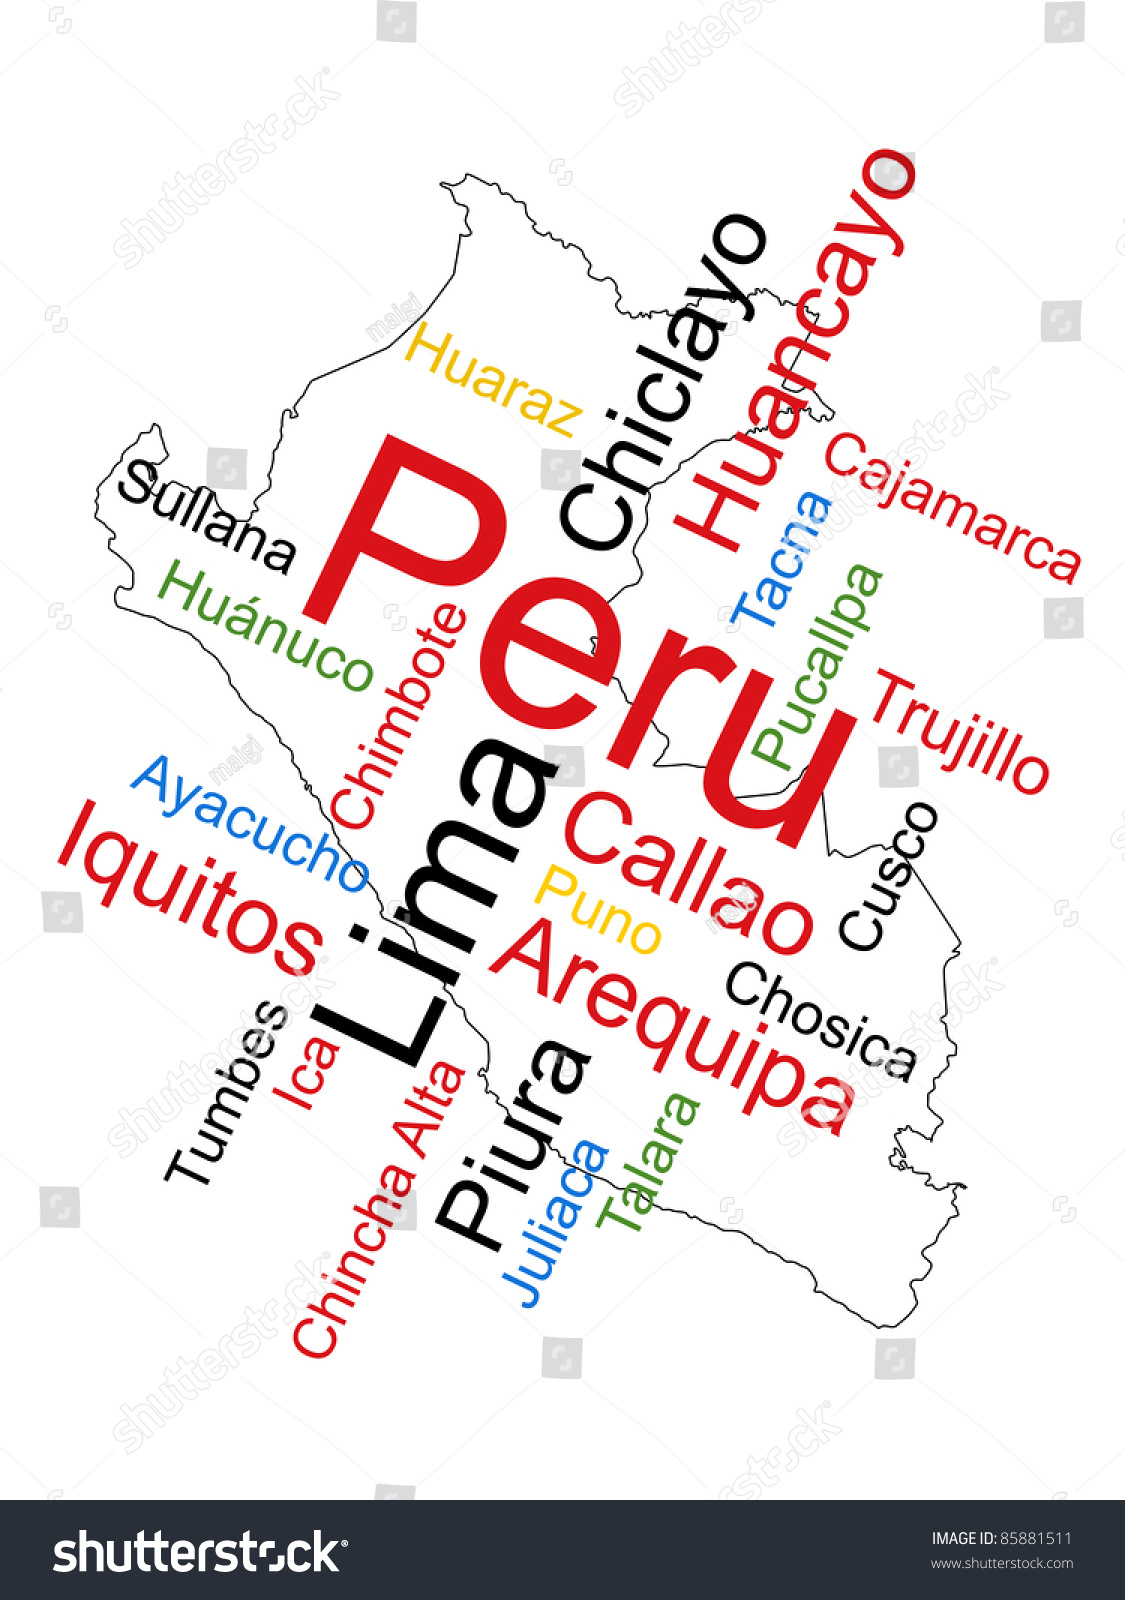 Peru Map Cities.Peru Map Words Cloud Larger Cities Stock Vector Royalty Free